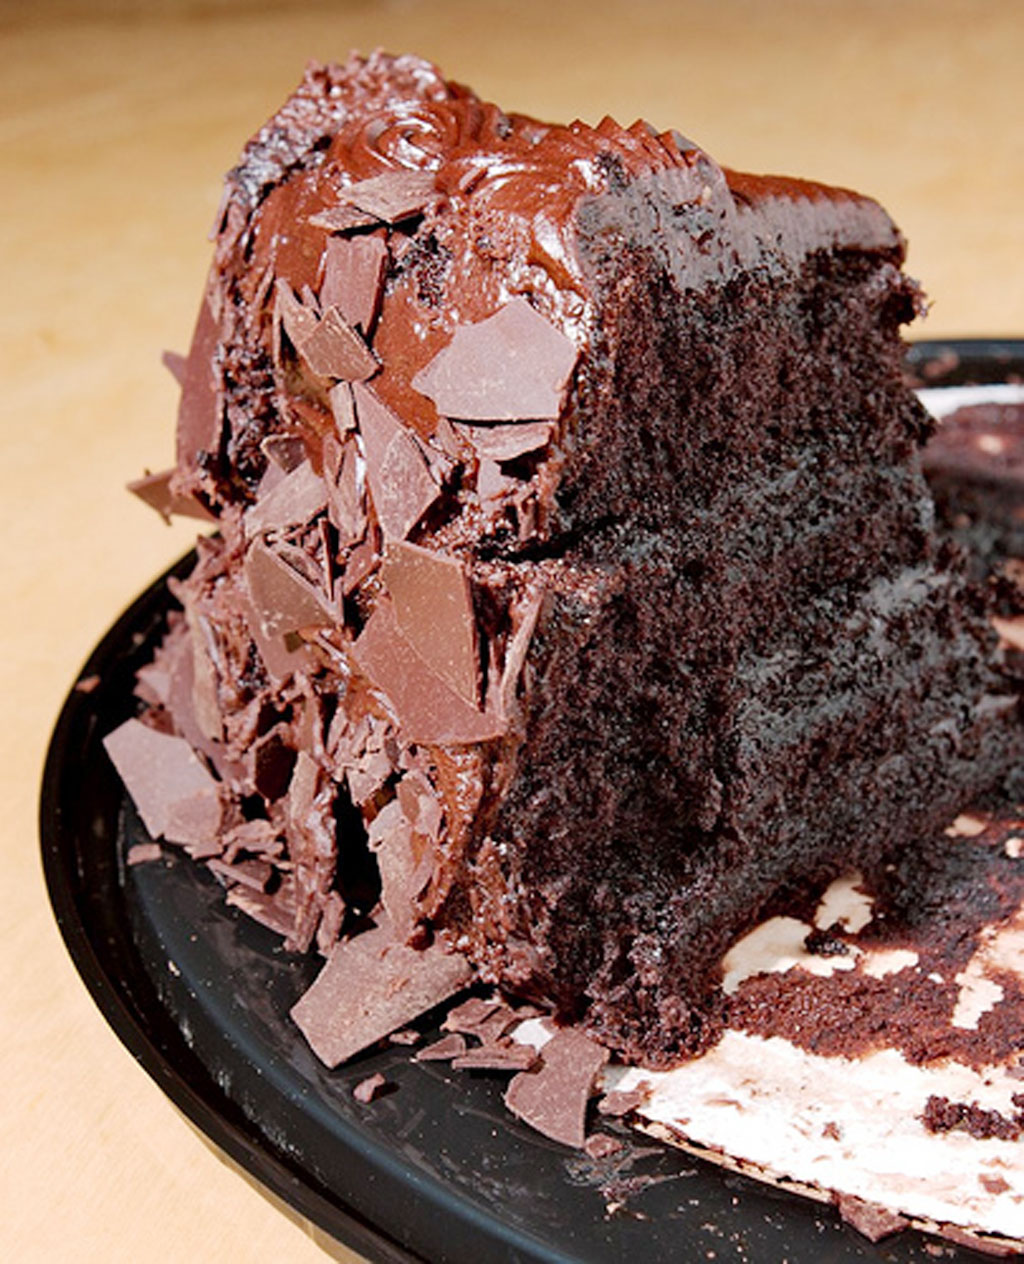 How To Make Costco Chocolate Cake